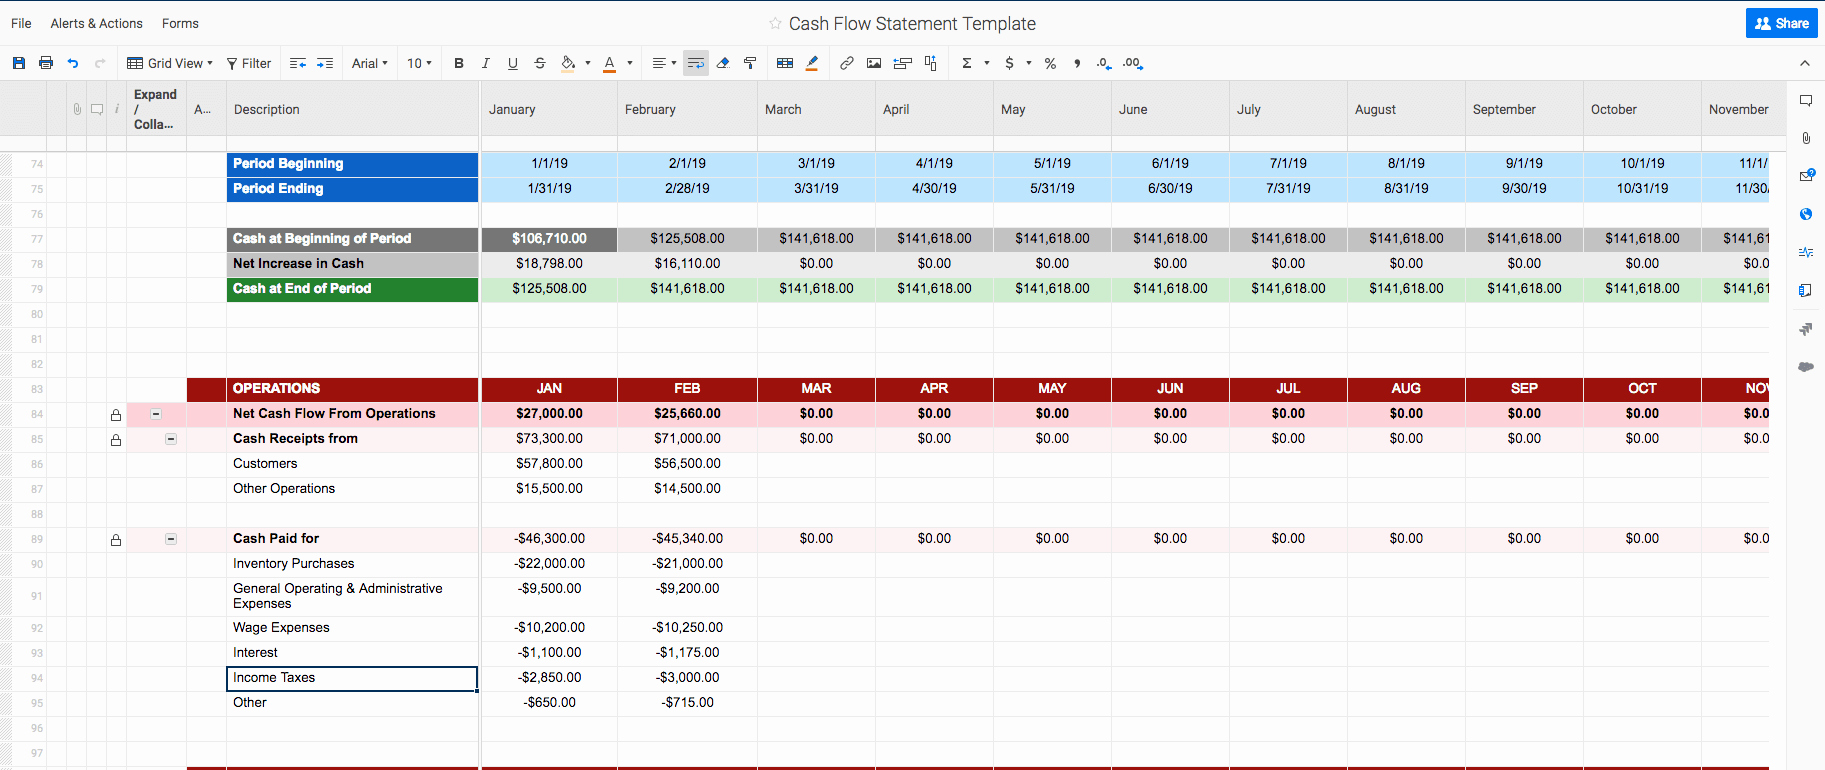 Daily Cash Flow Template Excel Lovely Free Cash Flow Statement Templates